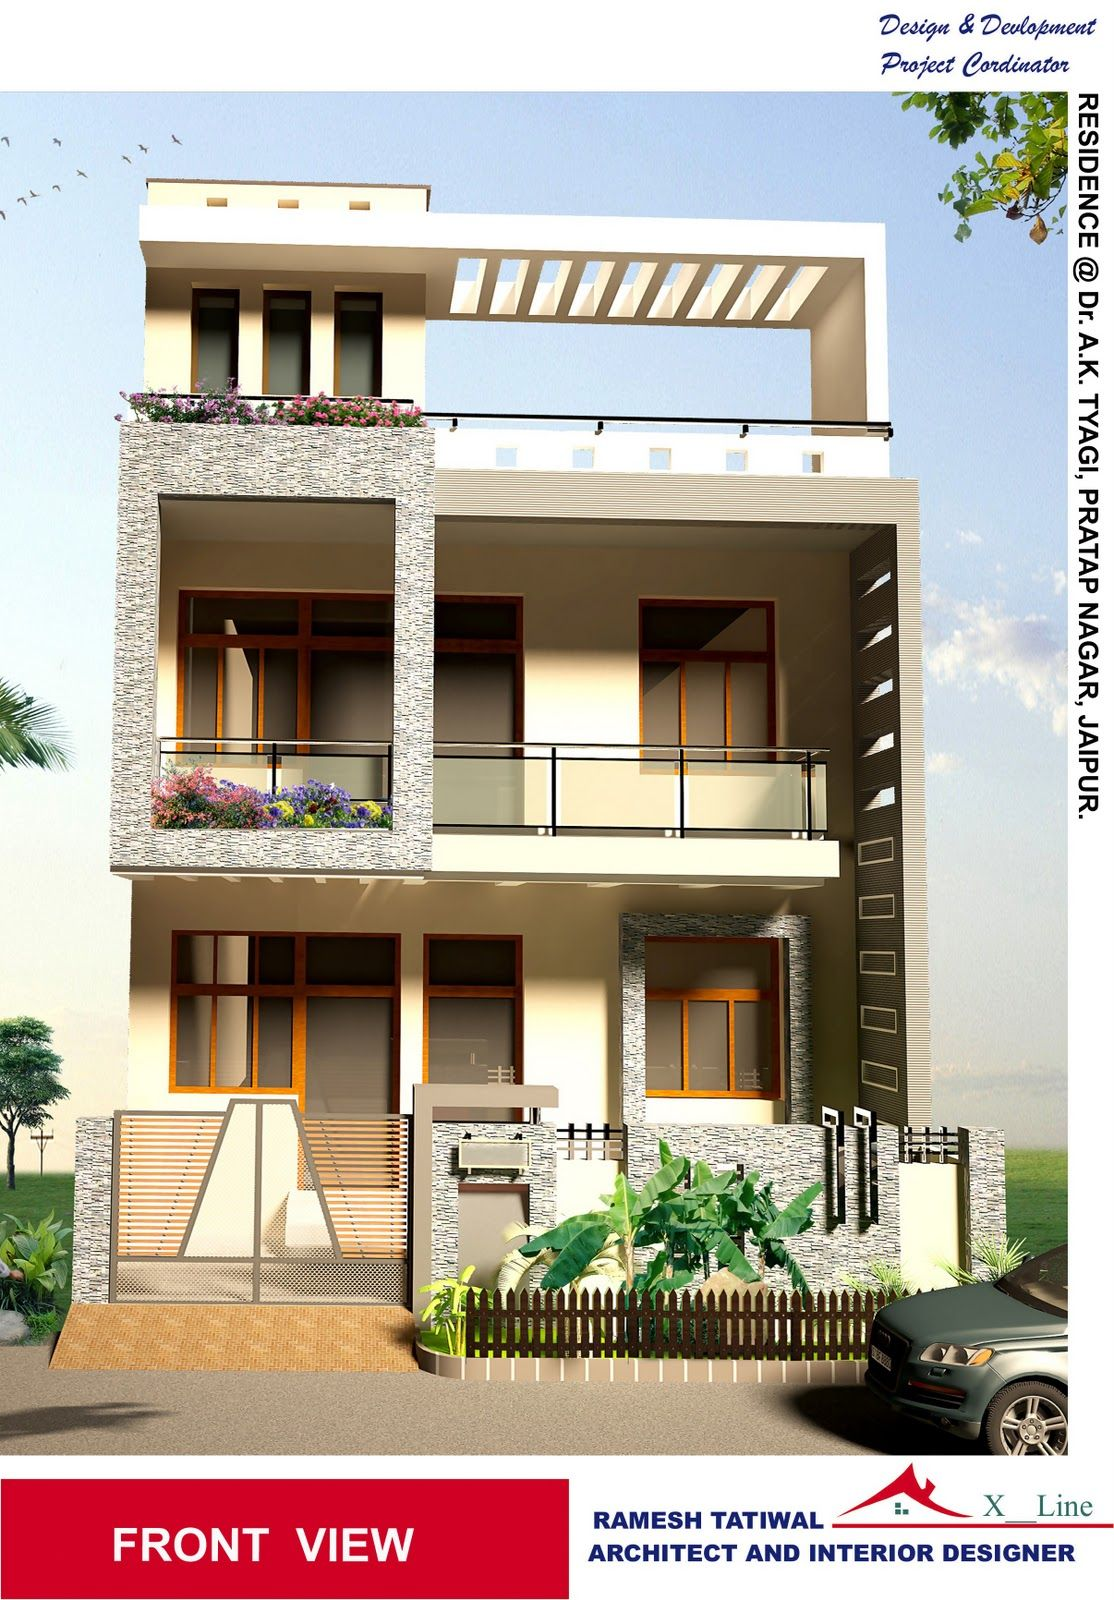 Outstanding 17 Best Images About House Designs On Pinterest House Plans Largest Home Design Picture Inspirations Pitcheantrous